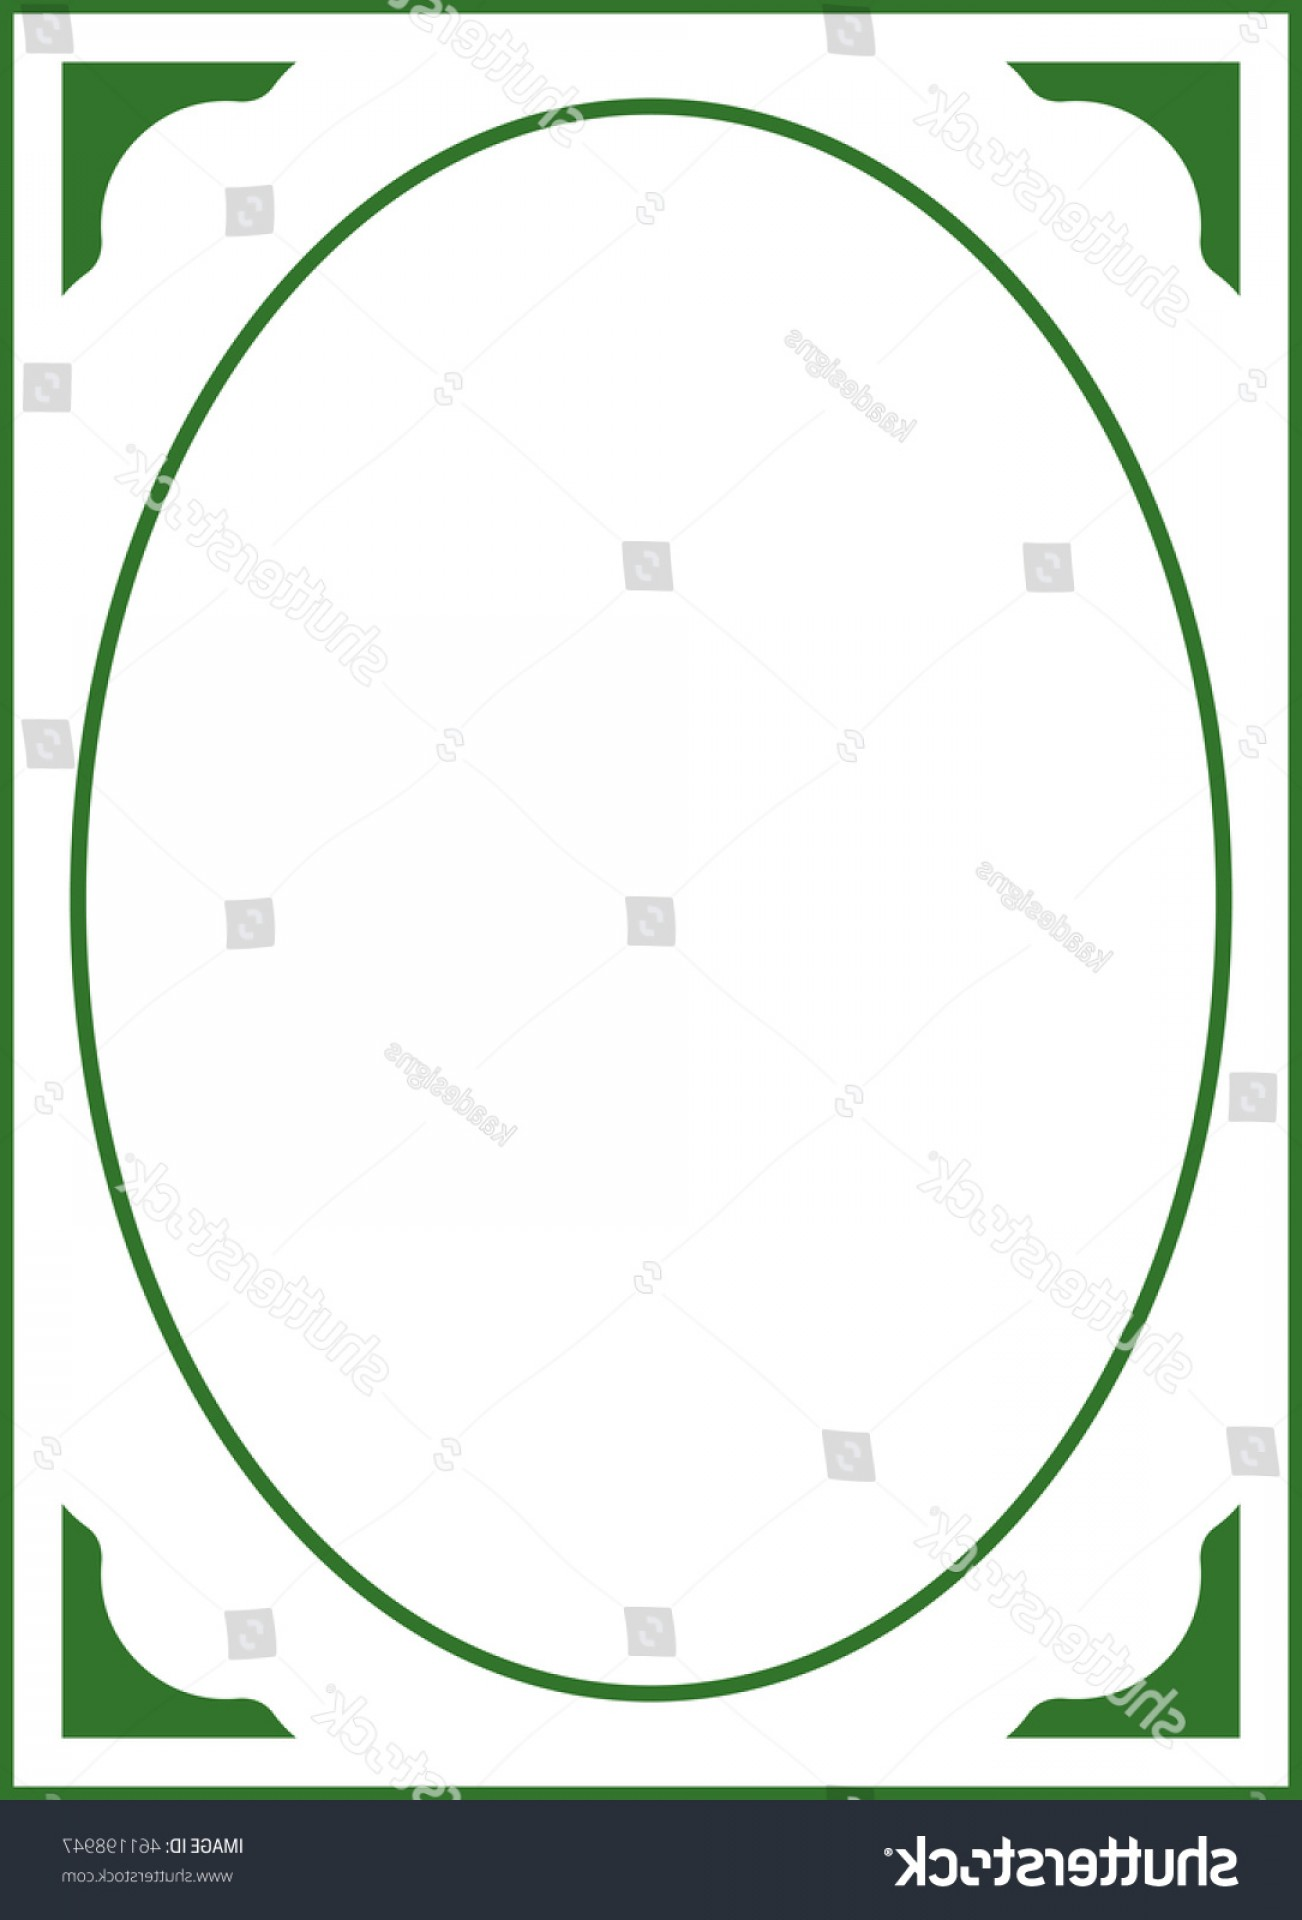 Green Oval Border Vector: Stock Vector Green Oval Frame Border Beautiful Vector Vintage Isolated